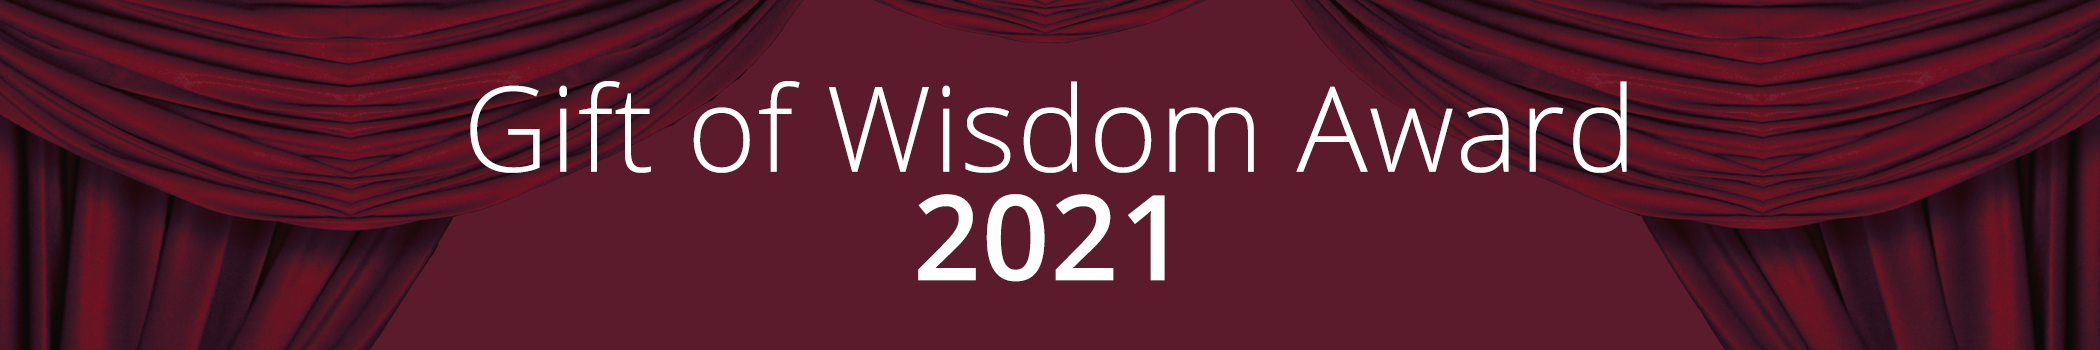 Gift of Wisdom Award 2021 text on red curtain